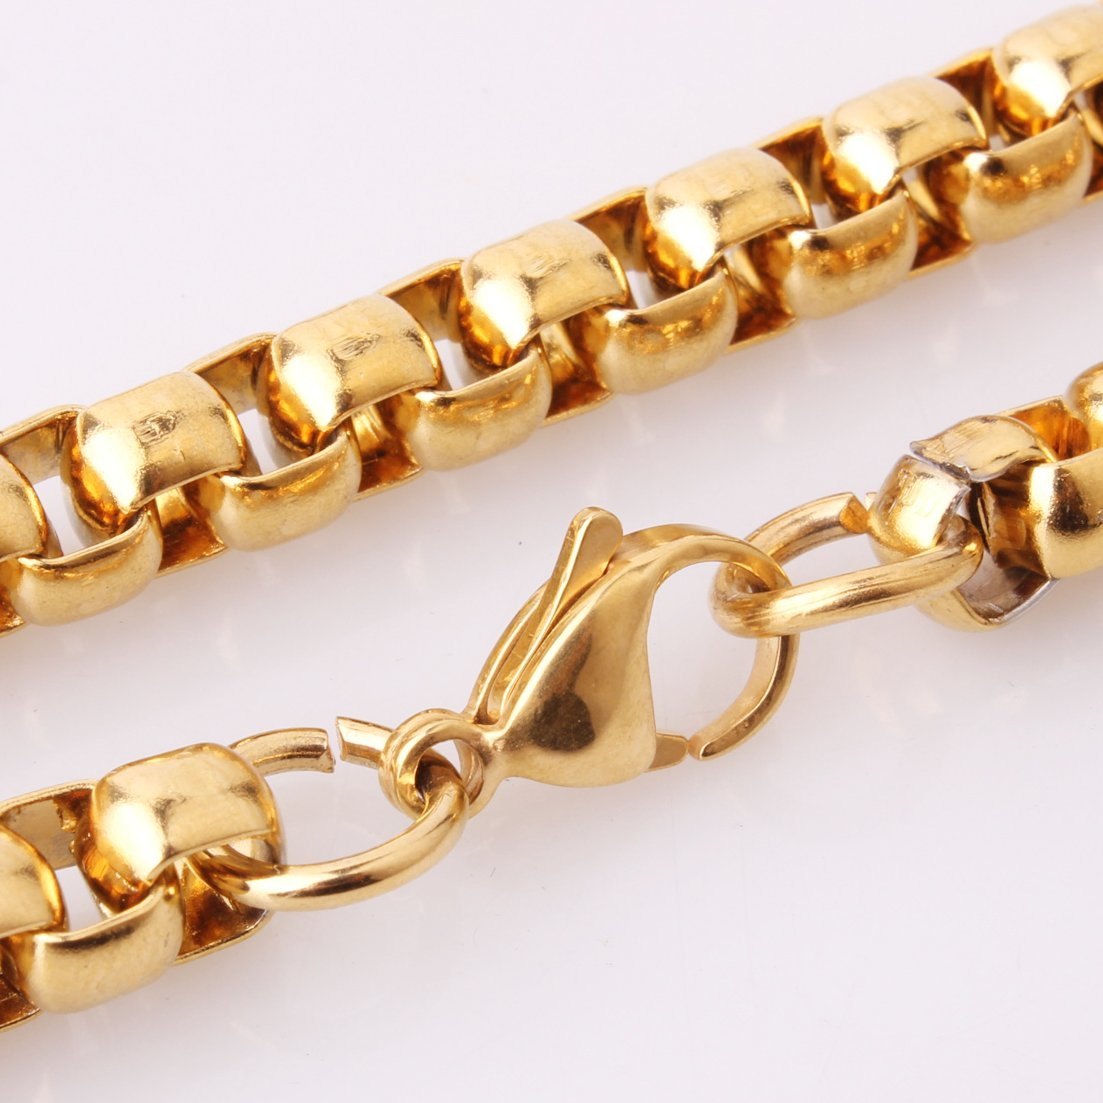 7mm Gold Plated Simple Box Link Chain Necklace Mens Jewelry Stainless Steel,16-40